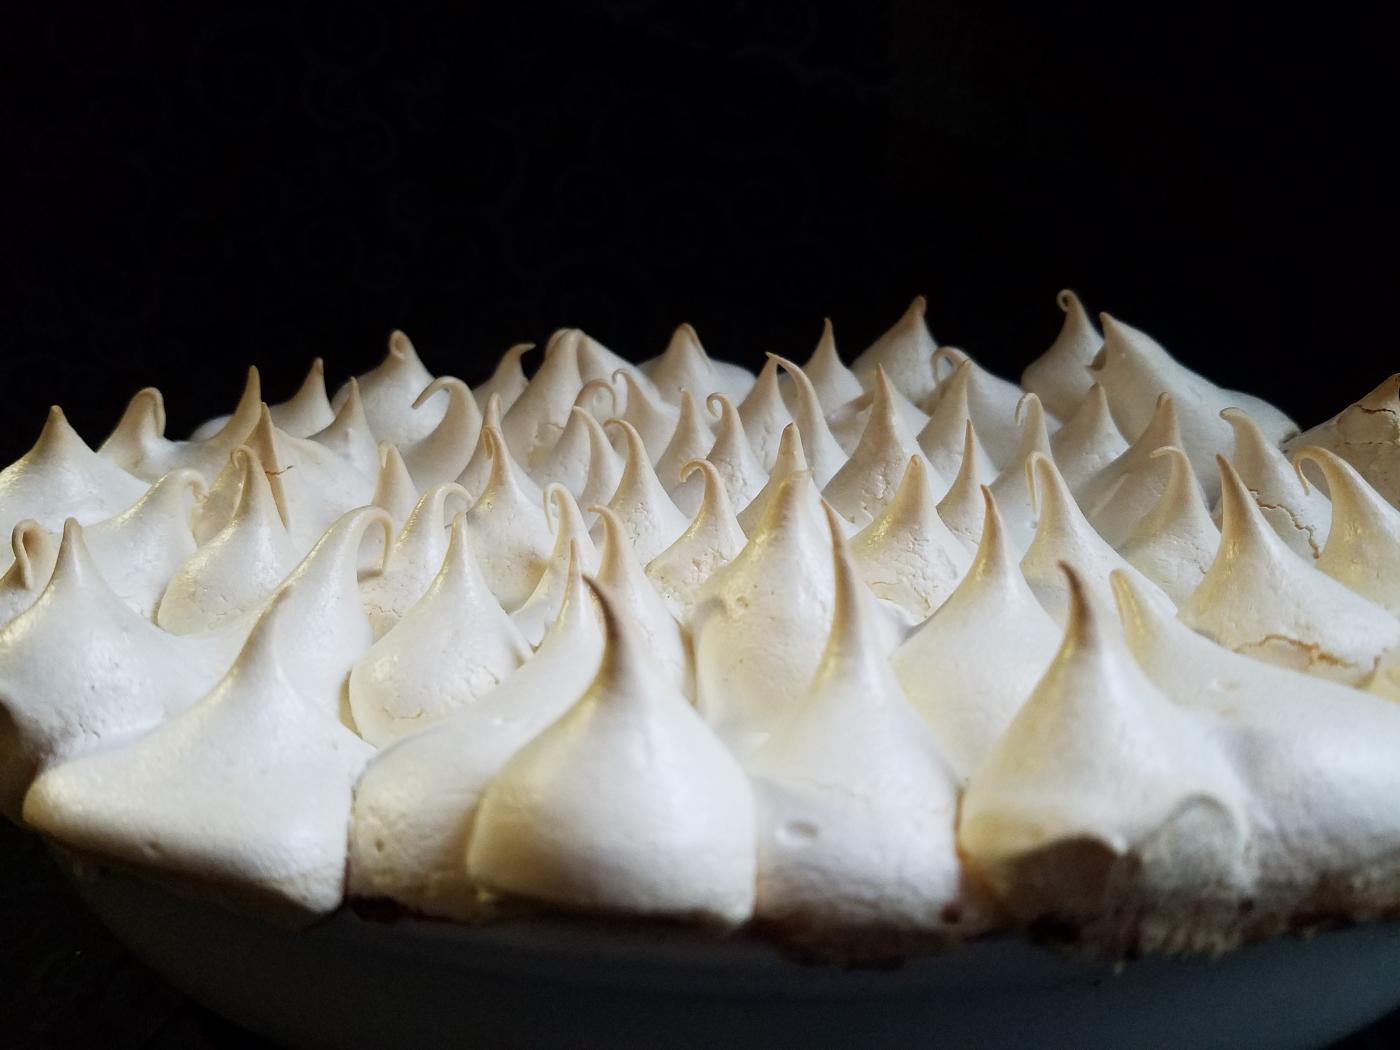 Barbie's Queen of Puddings features piped peaks of meringue